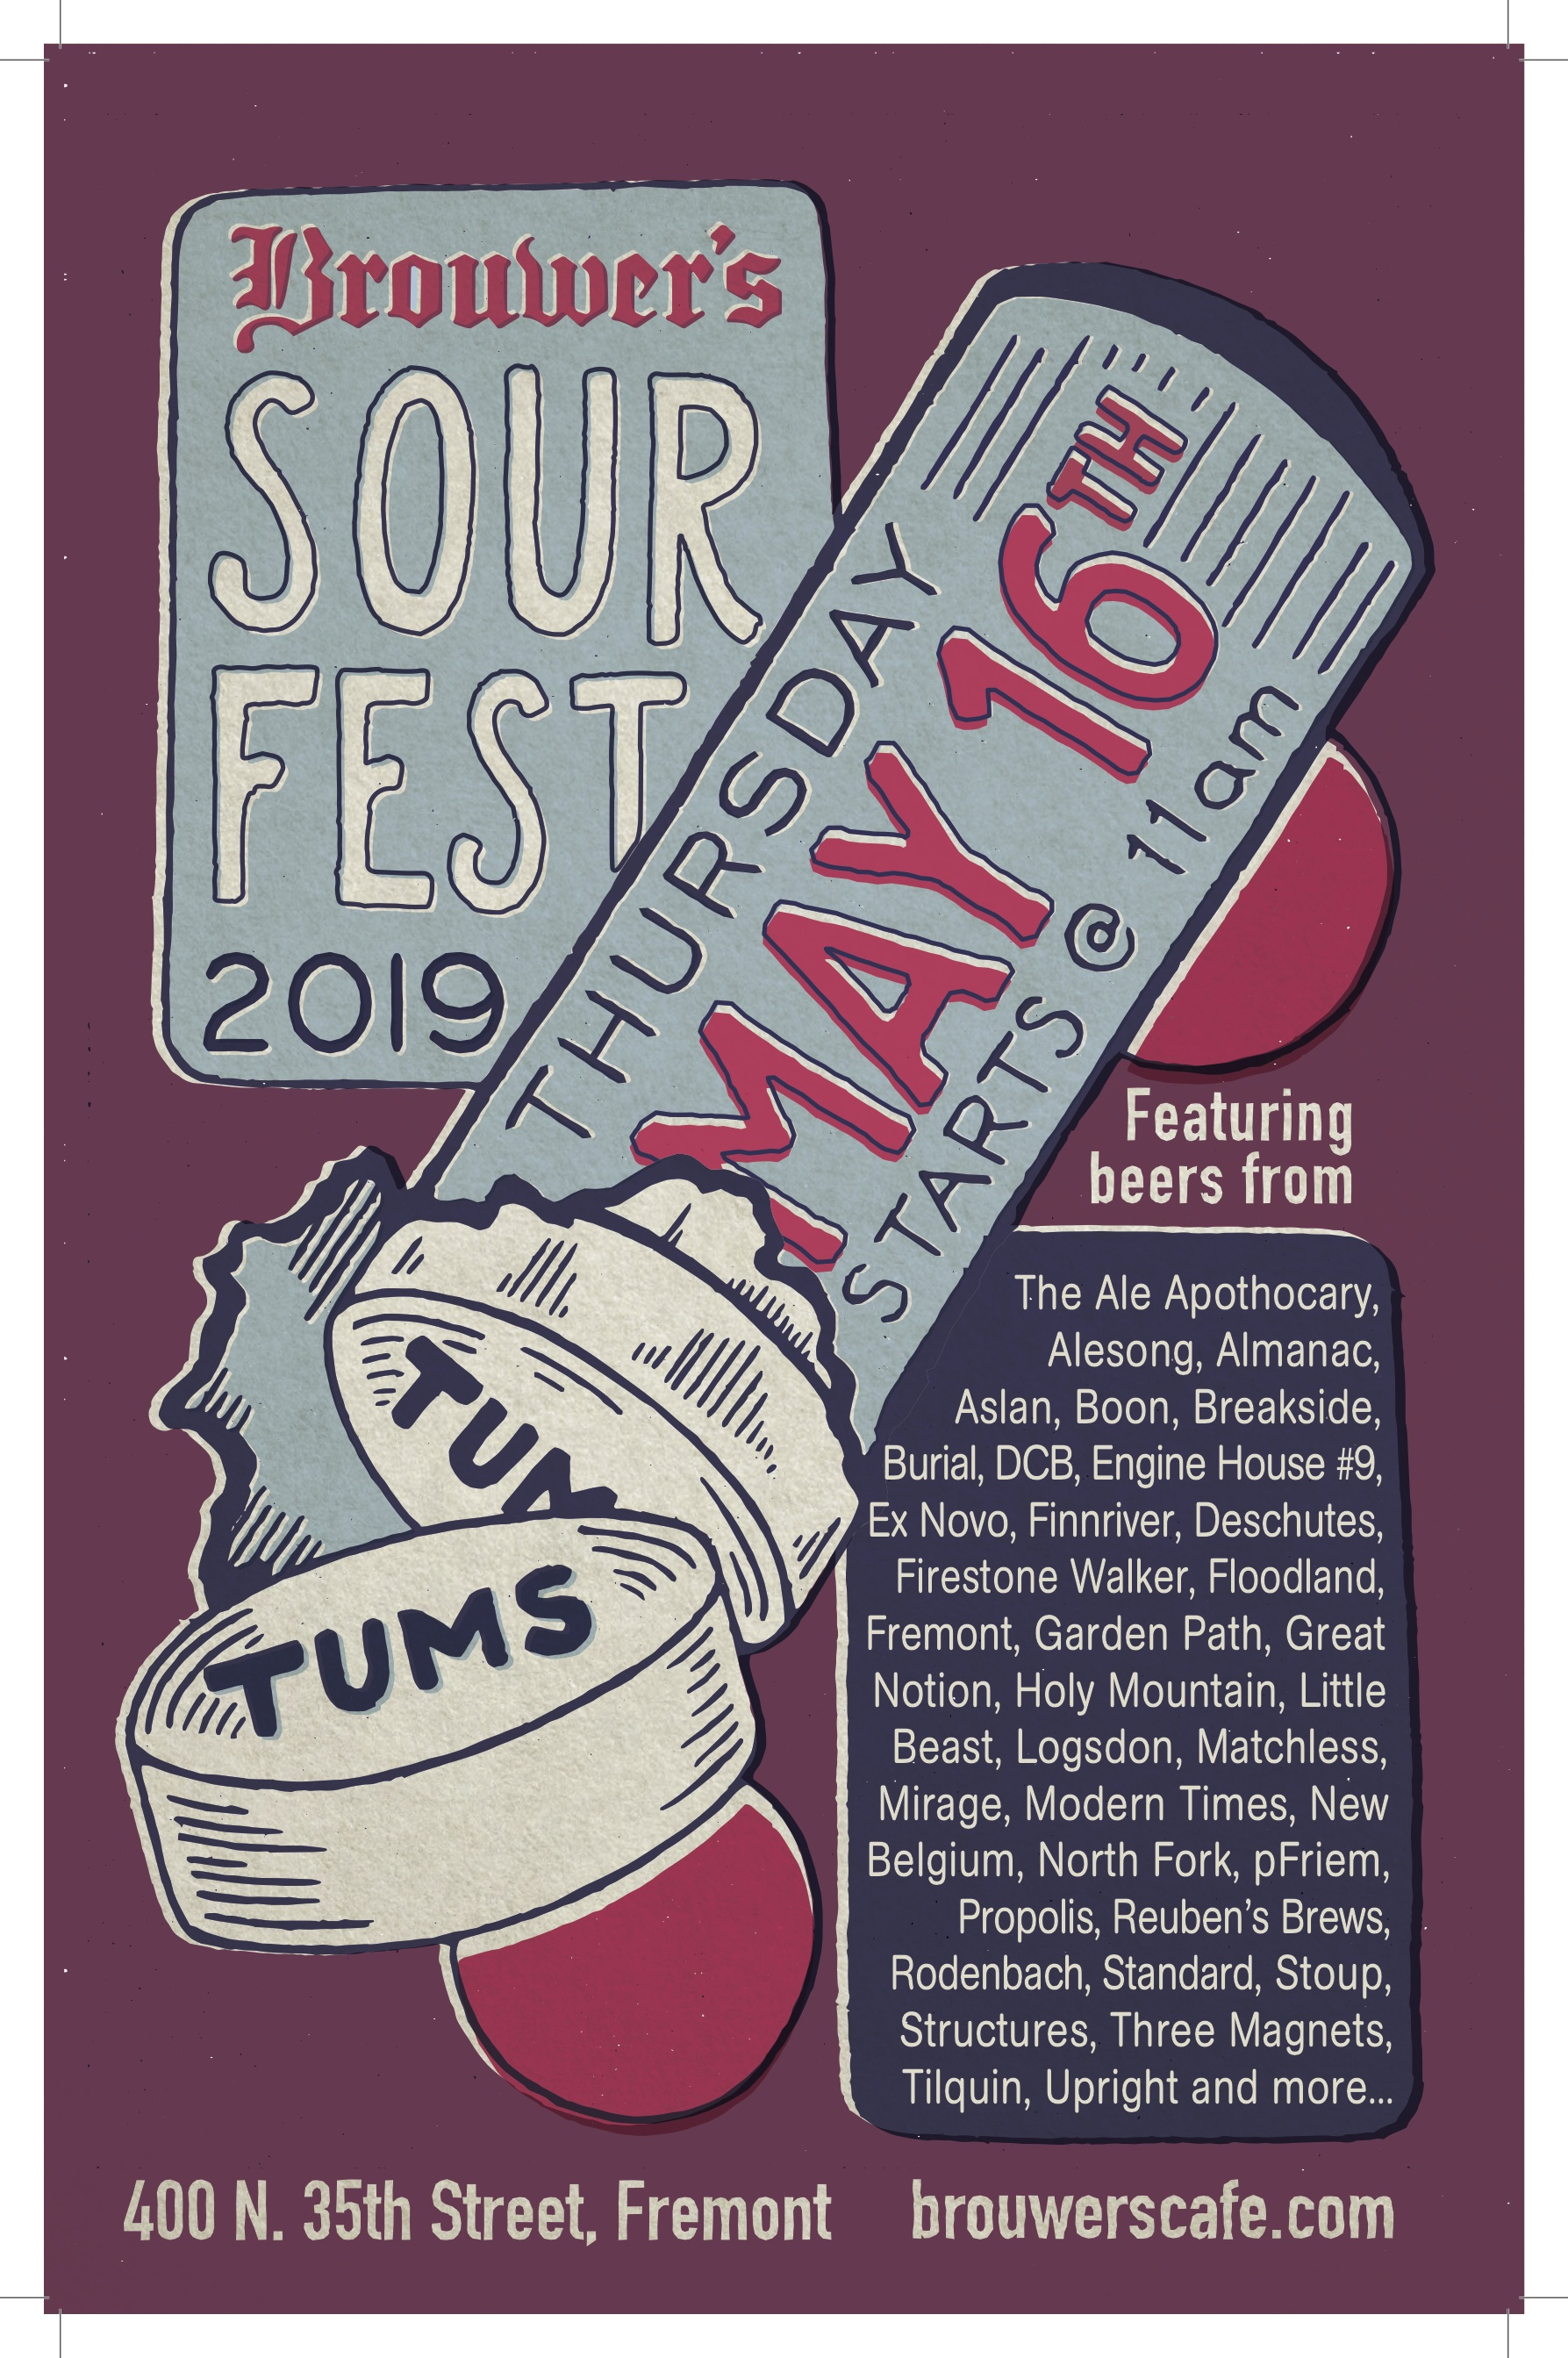 Thursday, May 16th @ 11am, Sour Fest